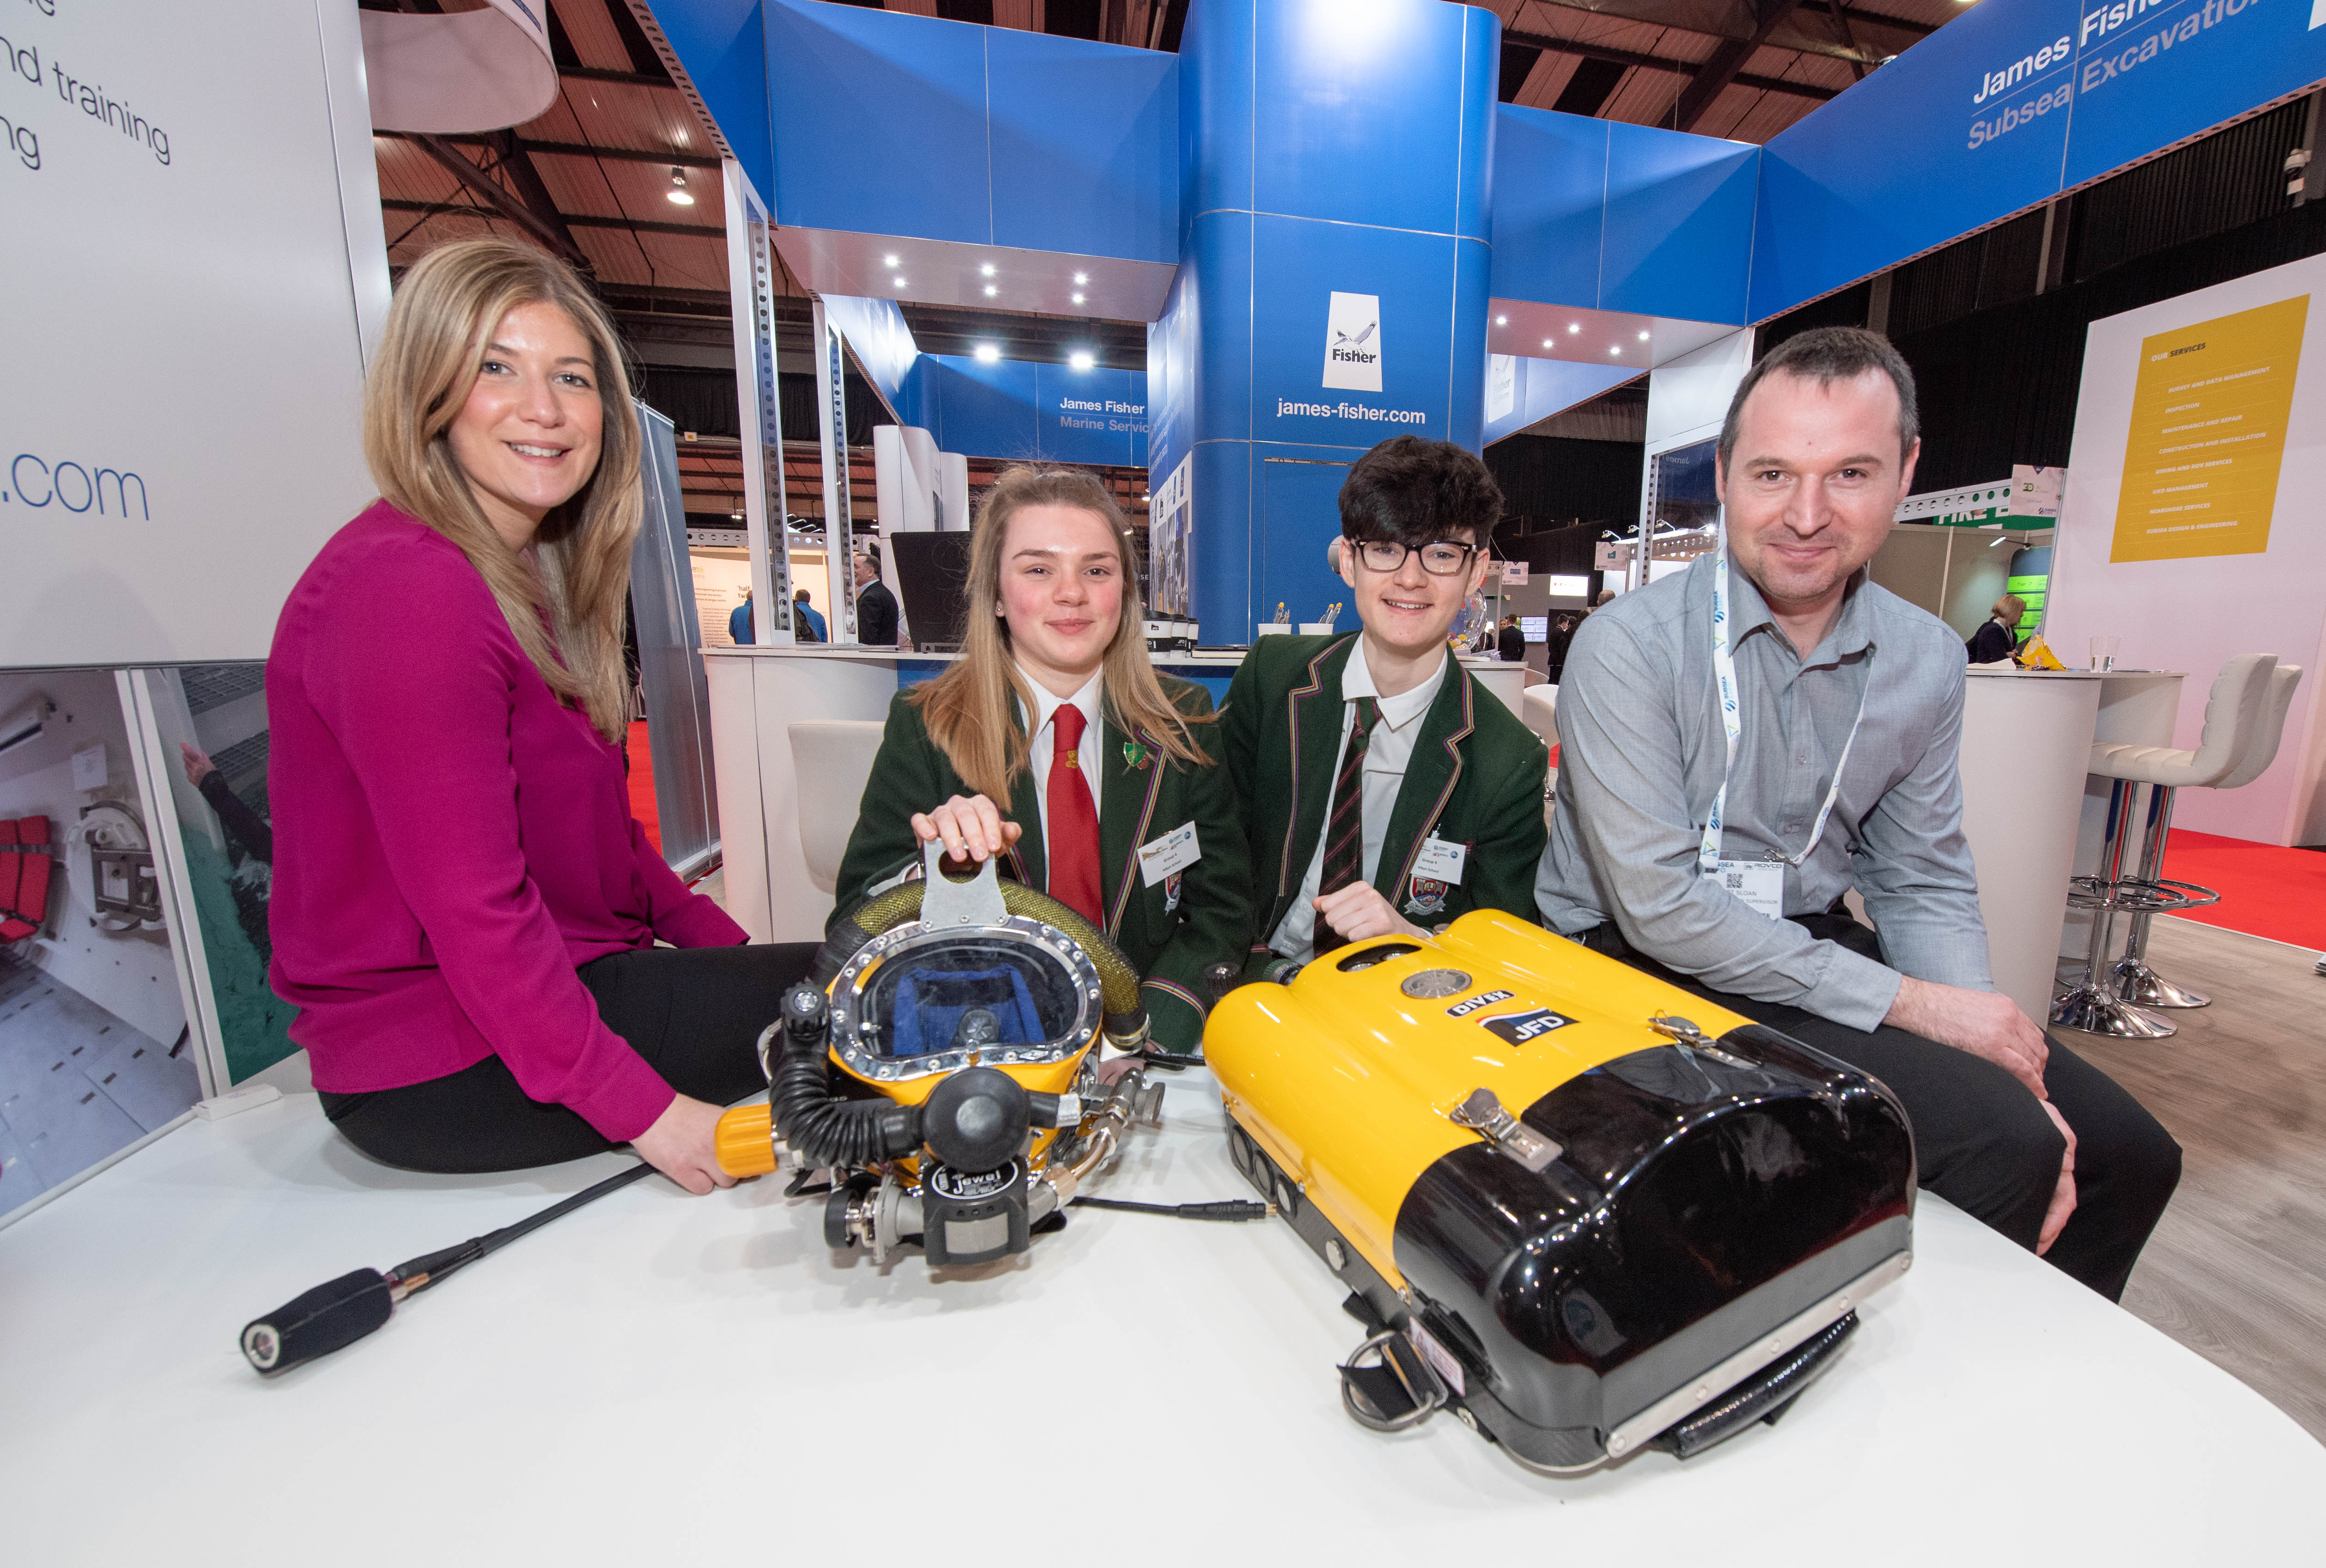 Wednesday 6 February 2019 North East Students Dive Into Tech At Subsea Expo 2019 News For